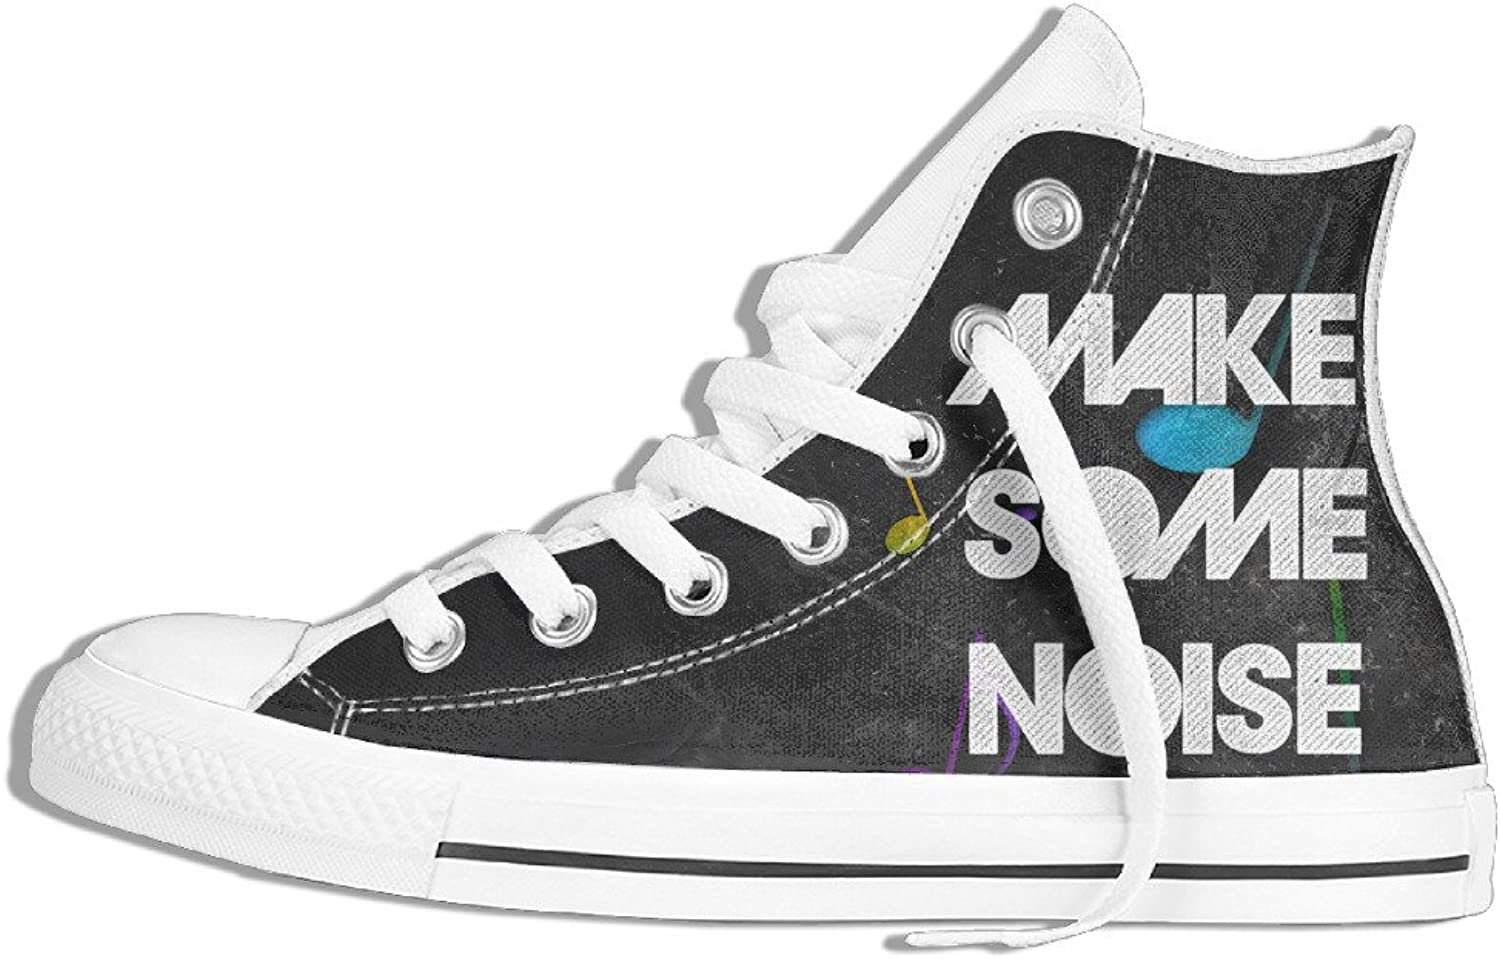 Efbj Make Some Noise Unisex Leisure High Top Gym shoes Trainers Sneakers for Men and Women